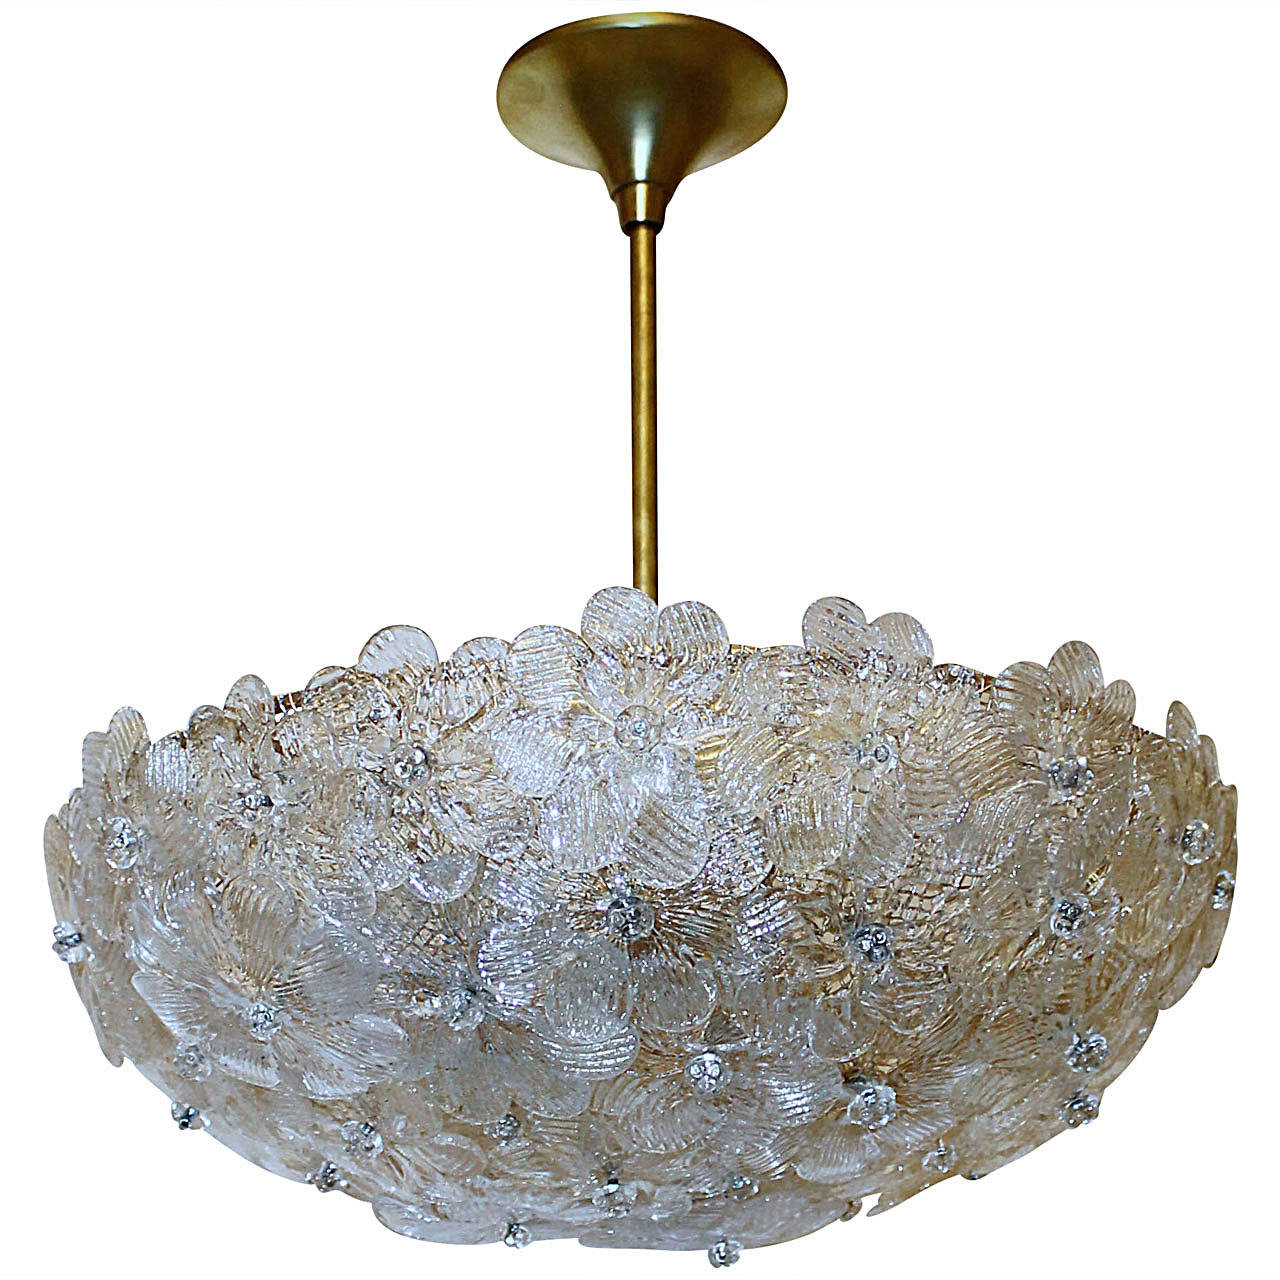 Barovier Murano Glass Floral Ceiling Pendant Light Chandelier